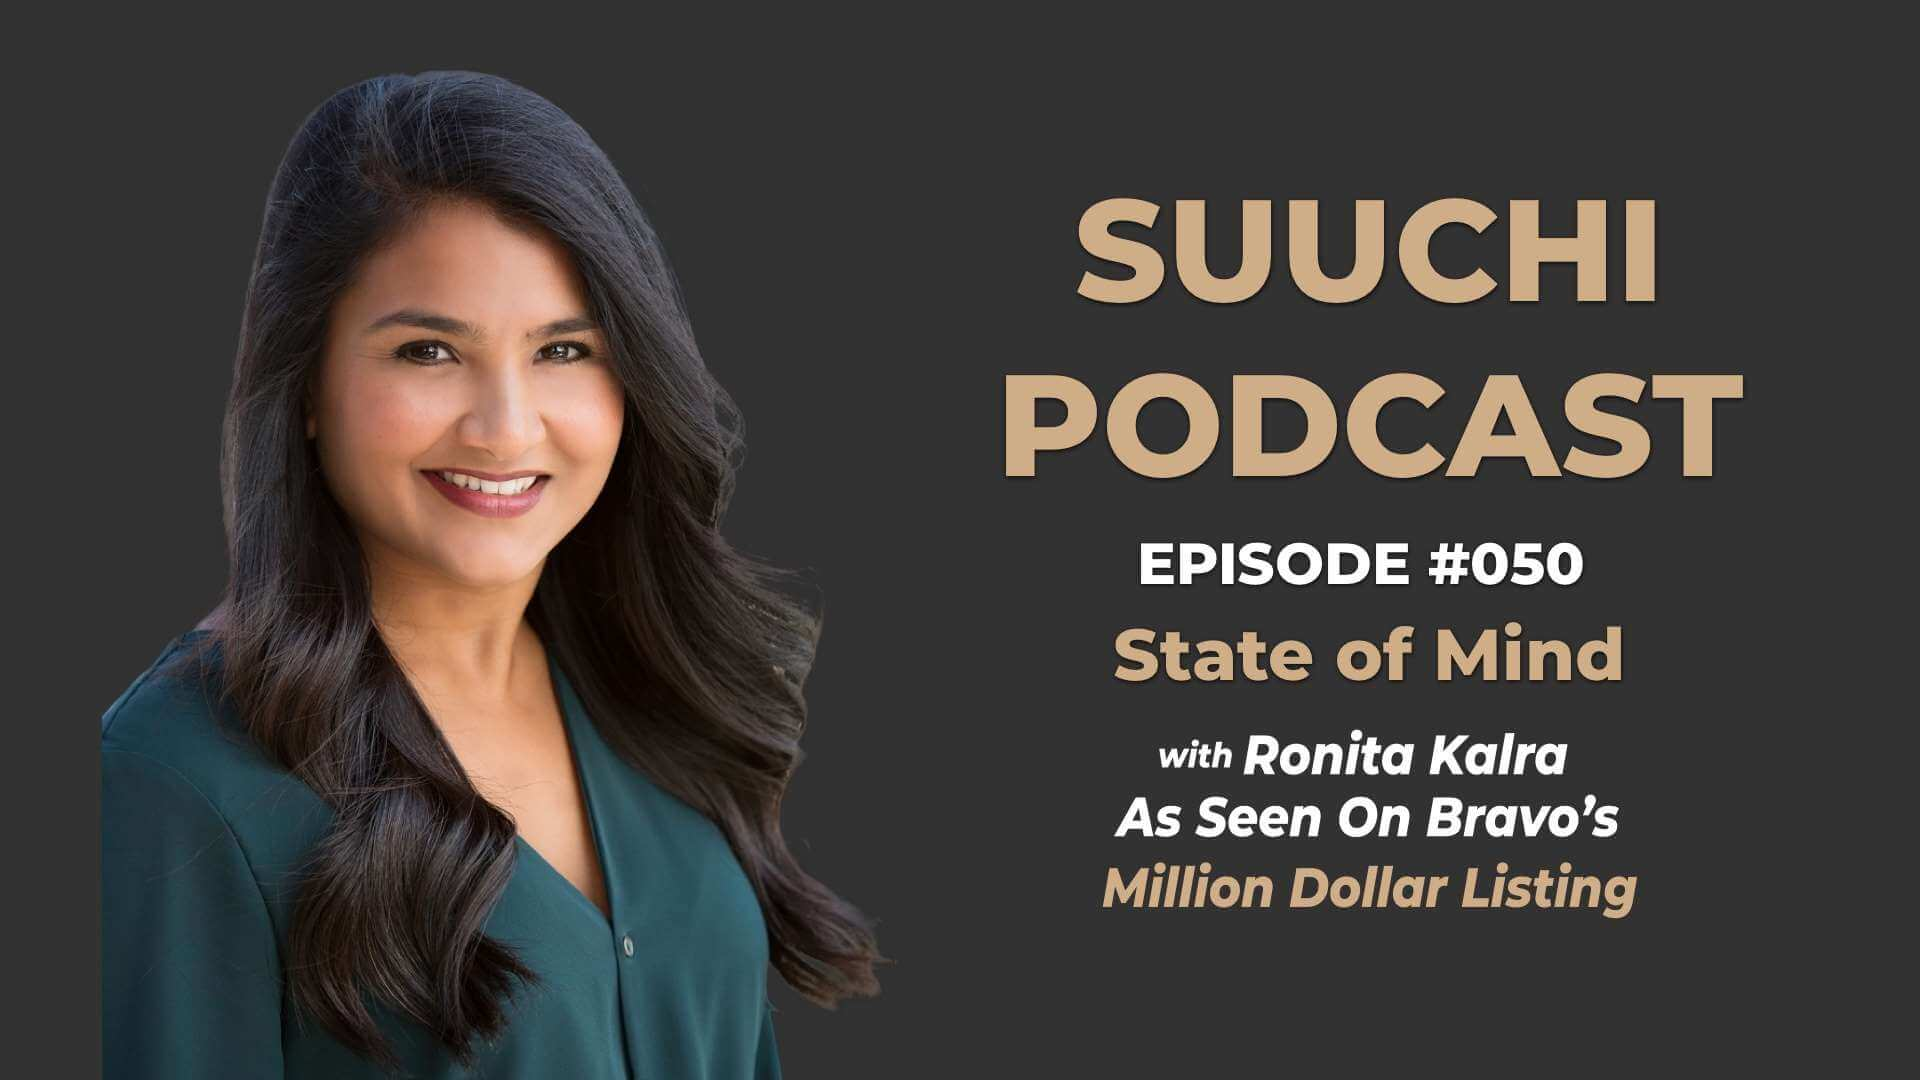 Suuchi Podcast #50: Ronita Kalra, successful real estate broker featured in Million Dollar Listing New York